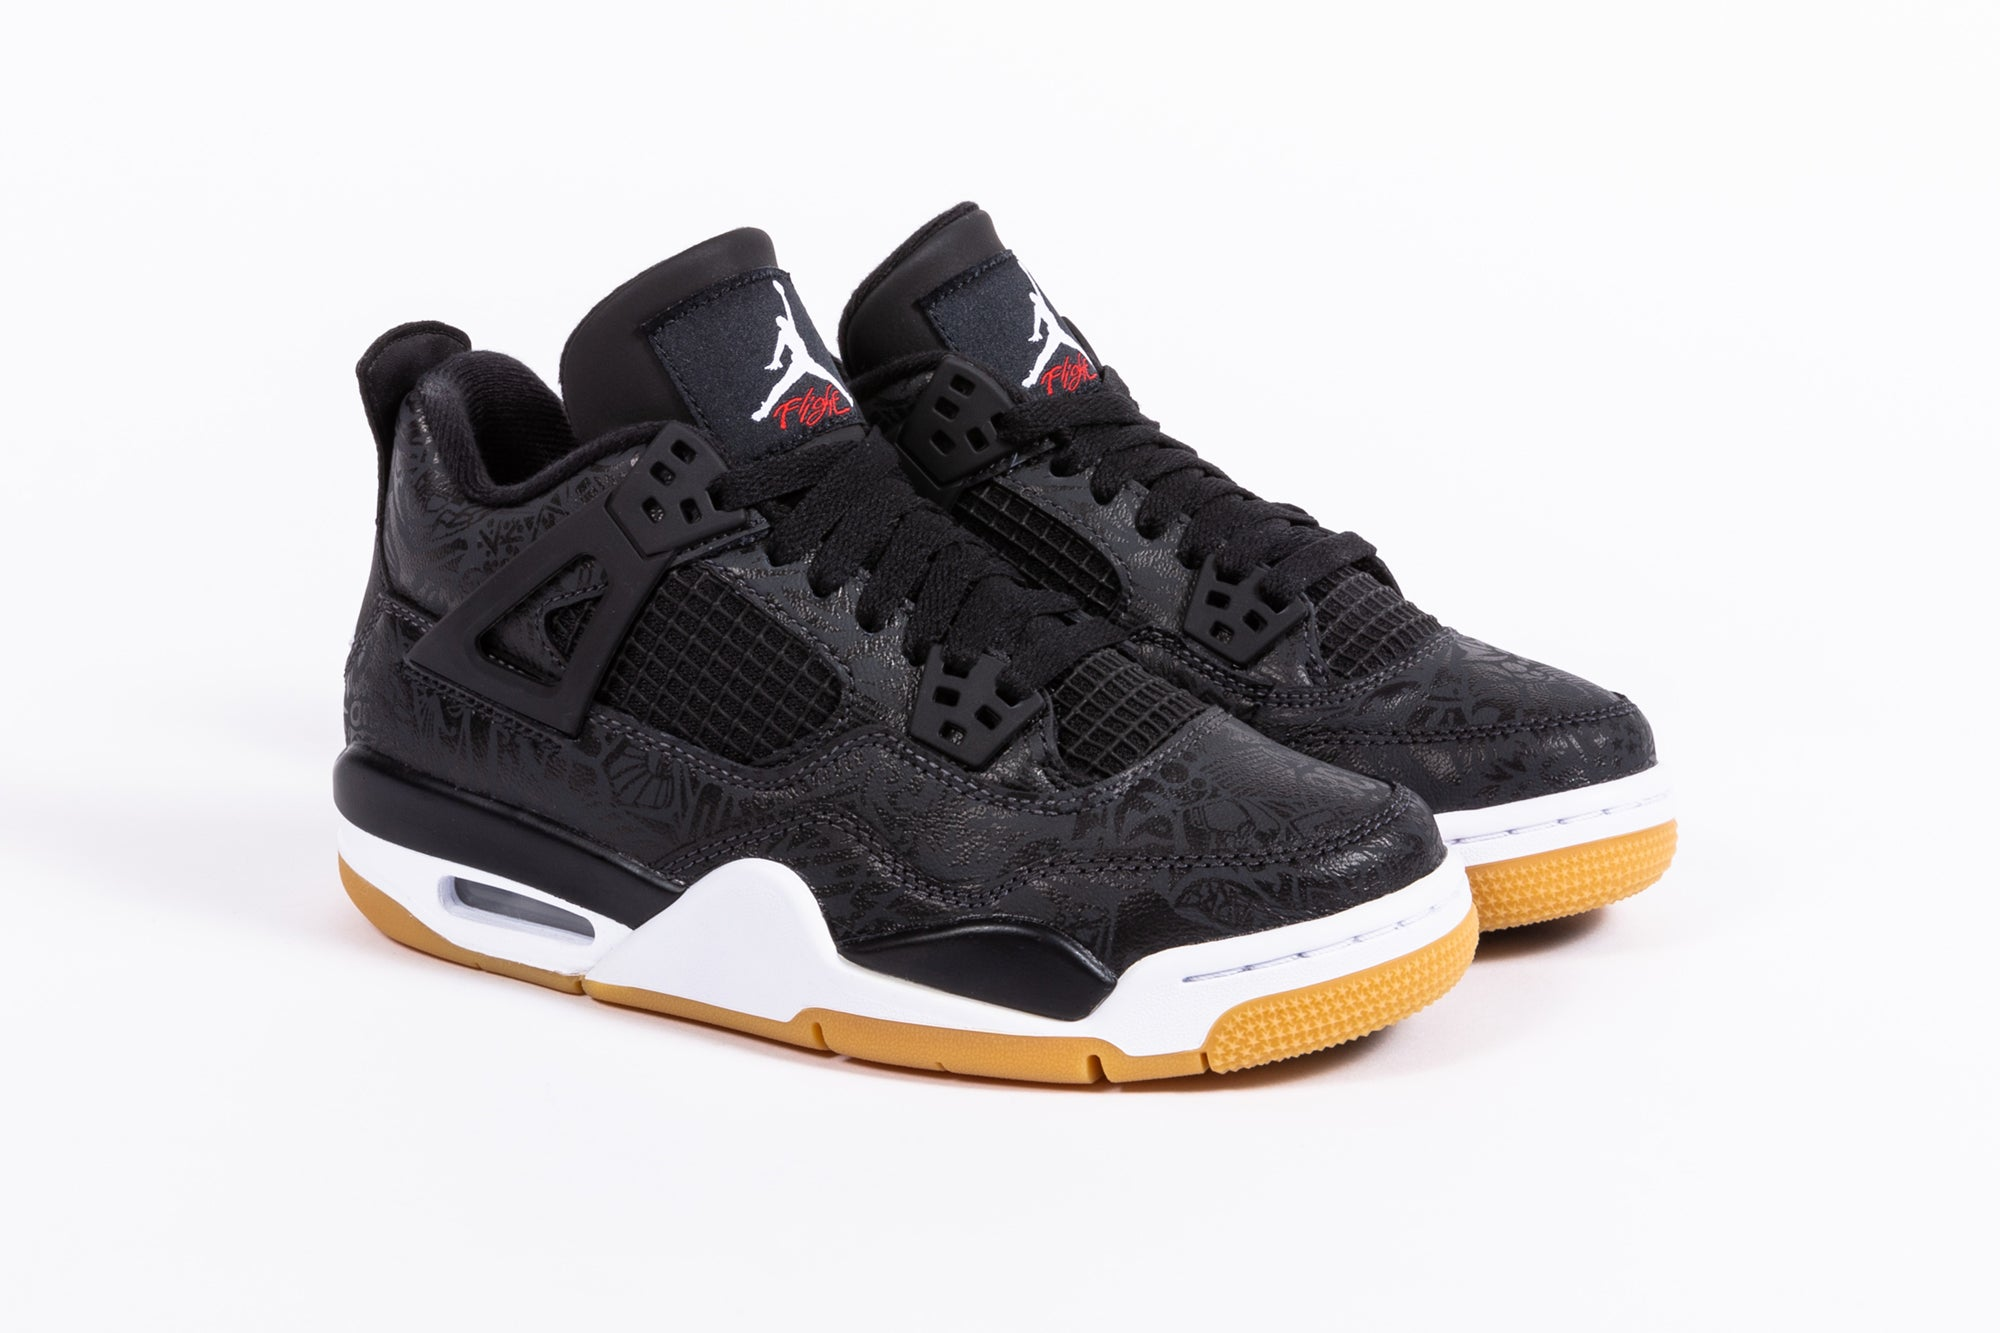 646fb502909 AIR JORDAN 4 RETRO SE LASER